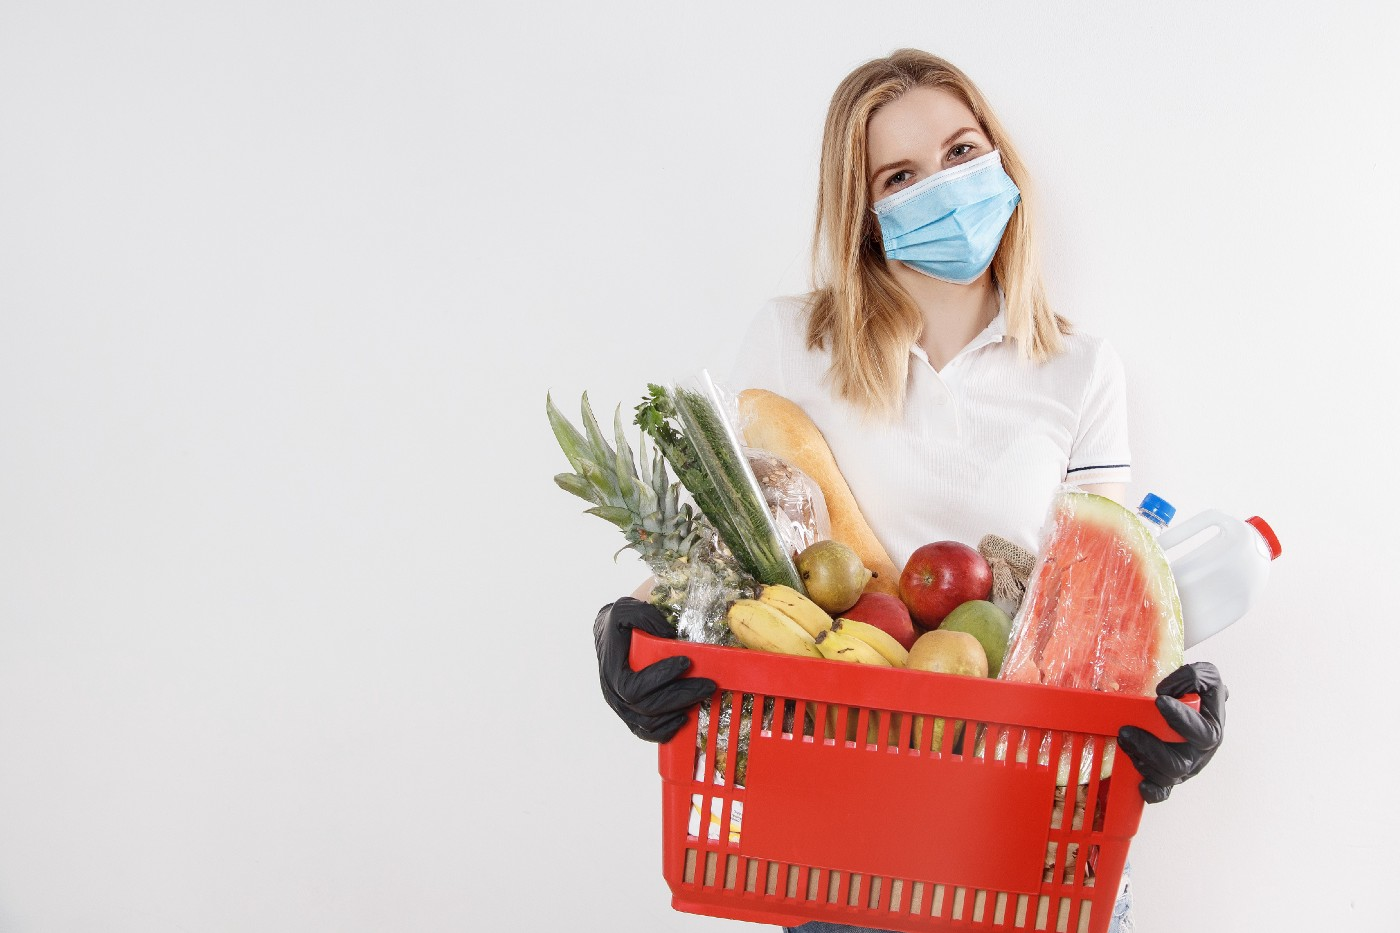 Woman wearing mask holding red basket of produce, including apples, watermelon, and pineapple.